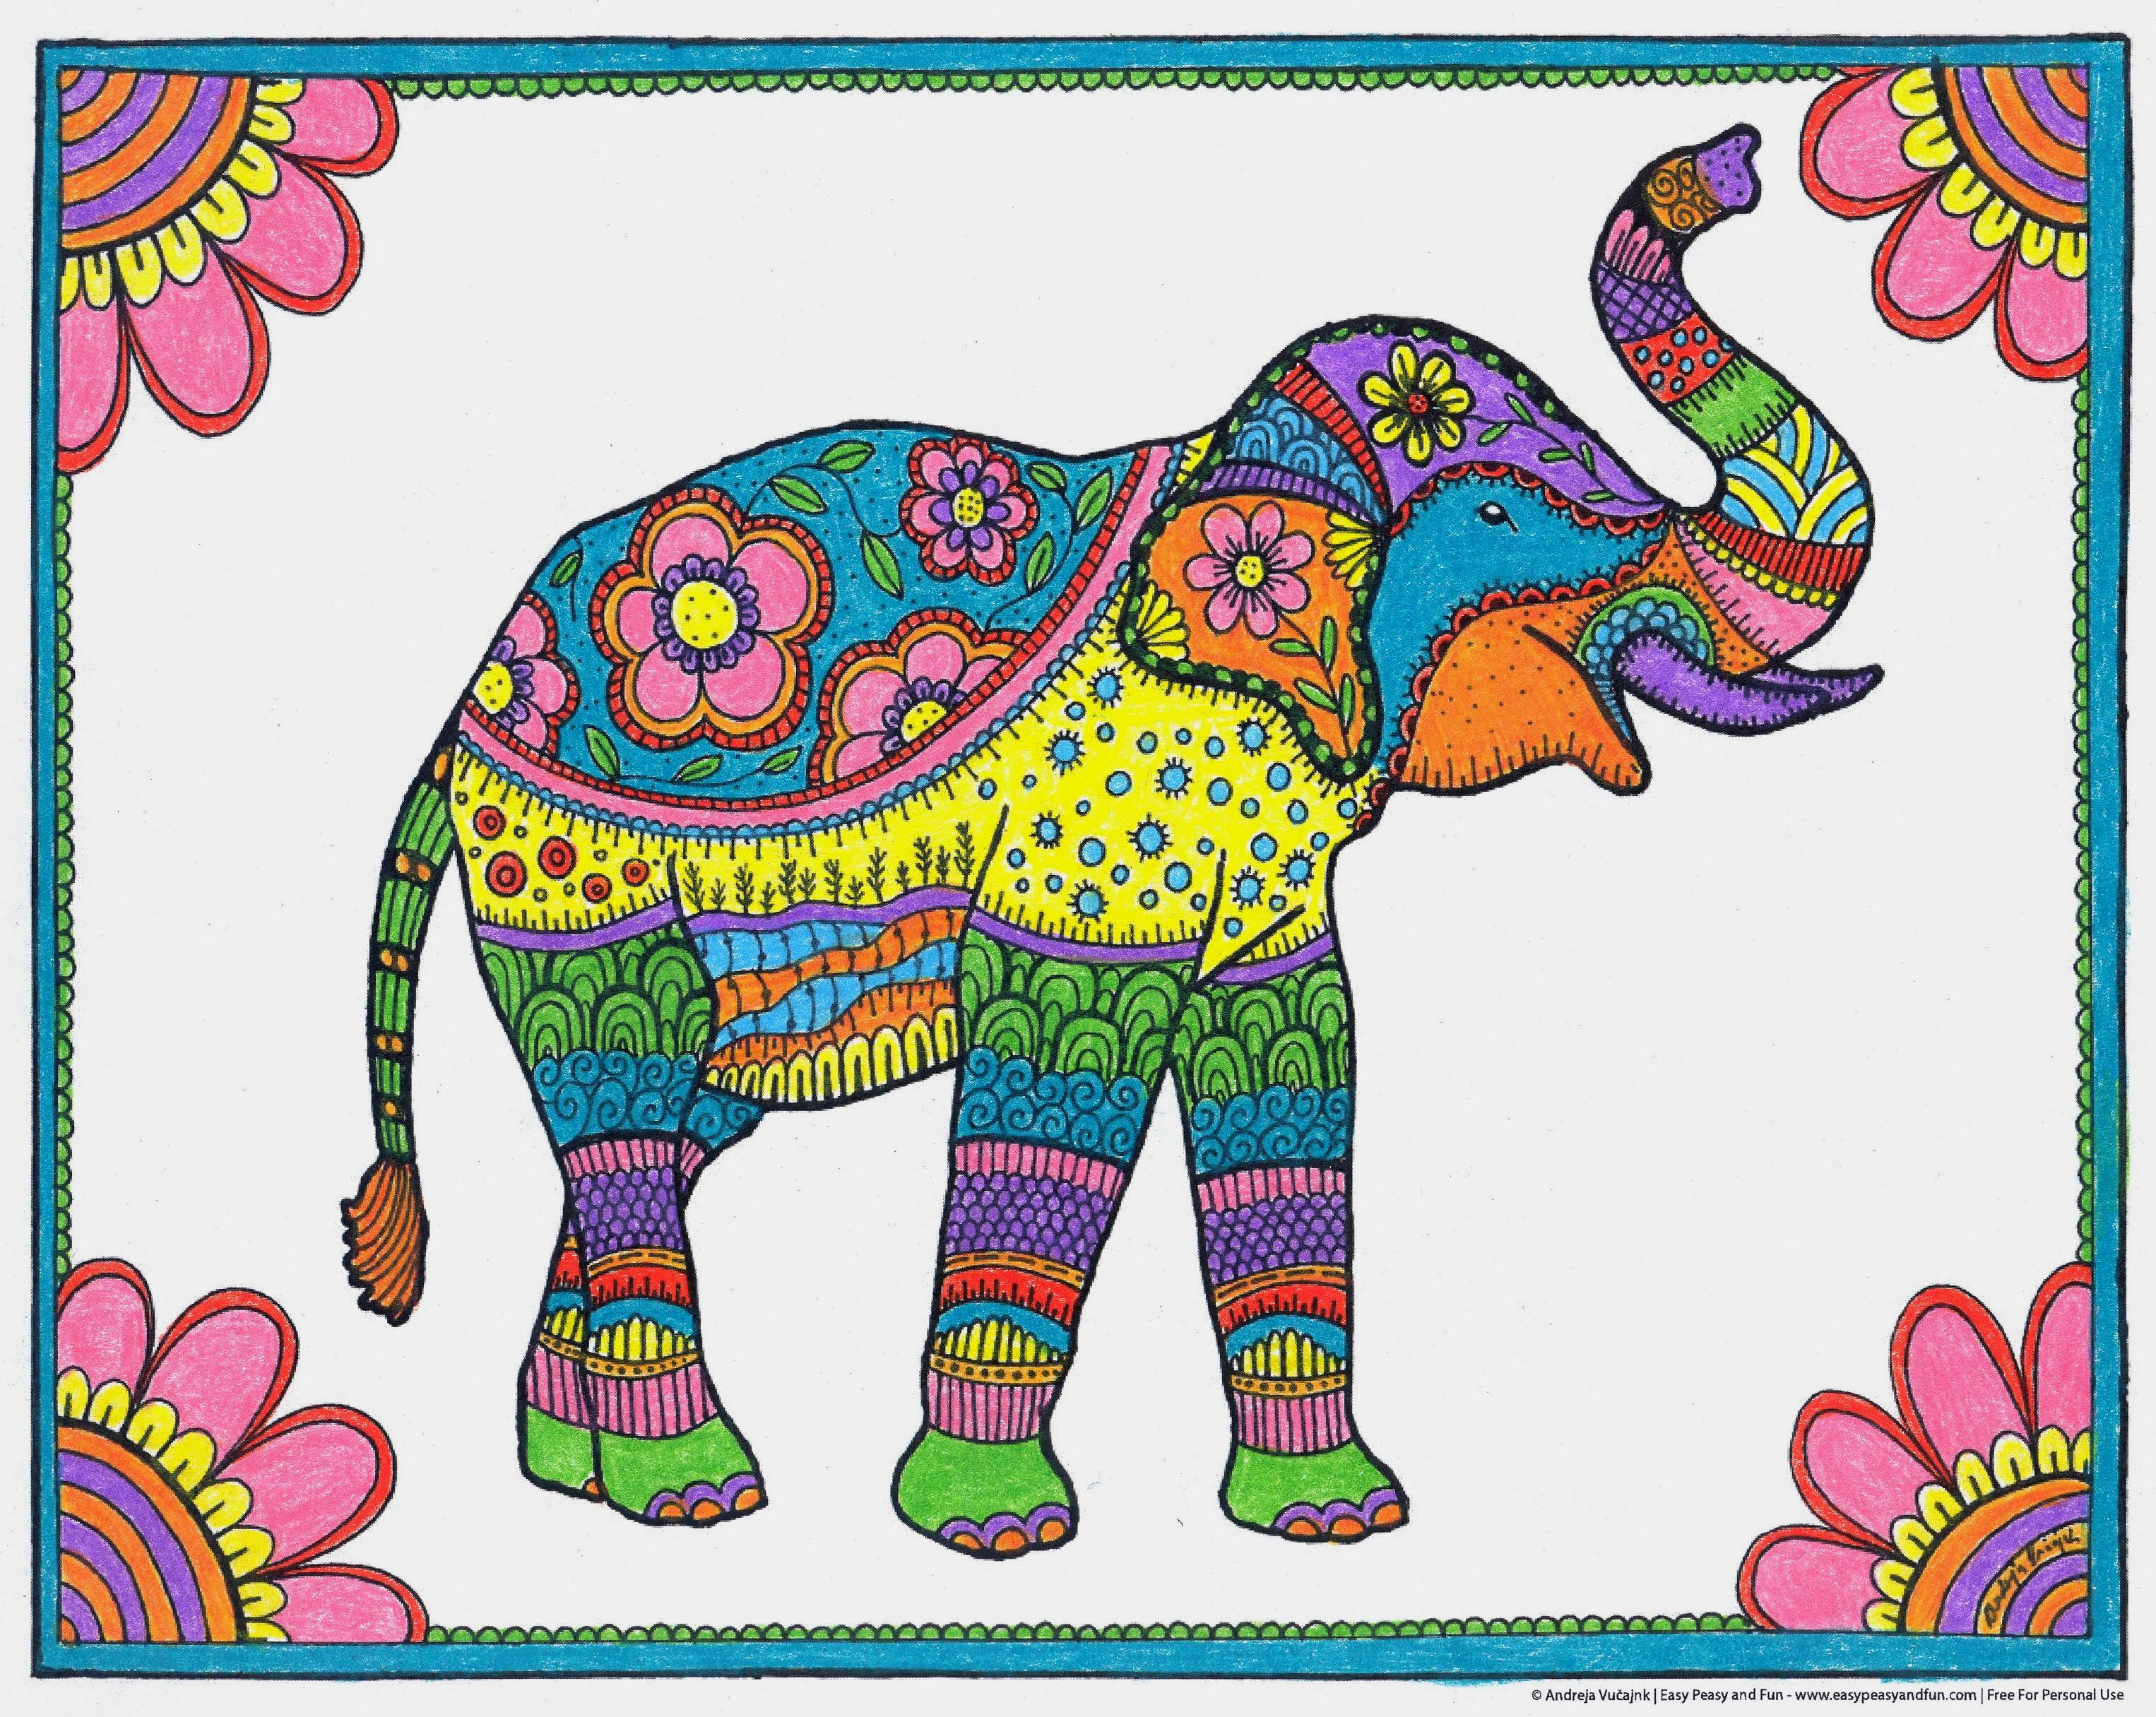 Coloring pages already colored - There Are So Many Things You Can Do With Your Filled In Coloring Pages Framing Them Of Course Is One Possibility But You Can Also Scan Them To Create A